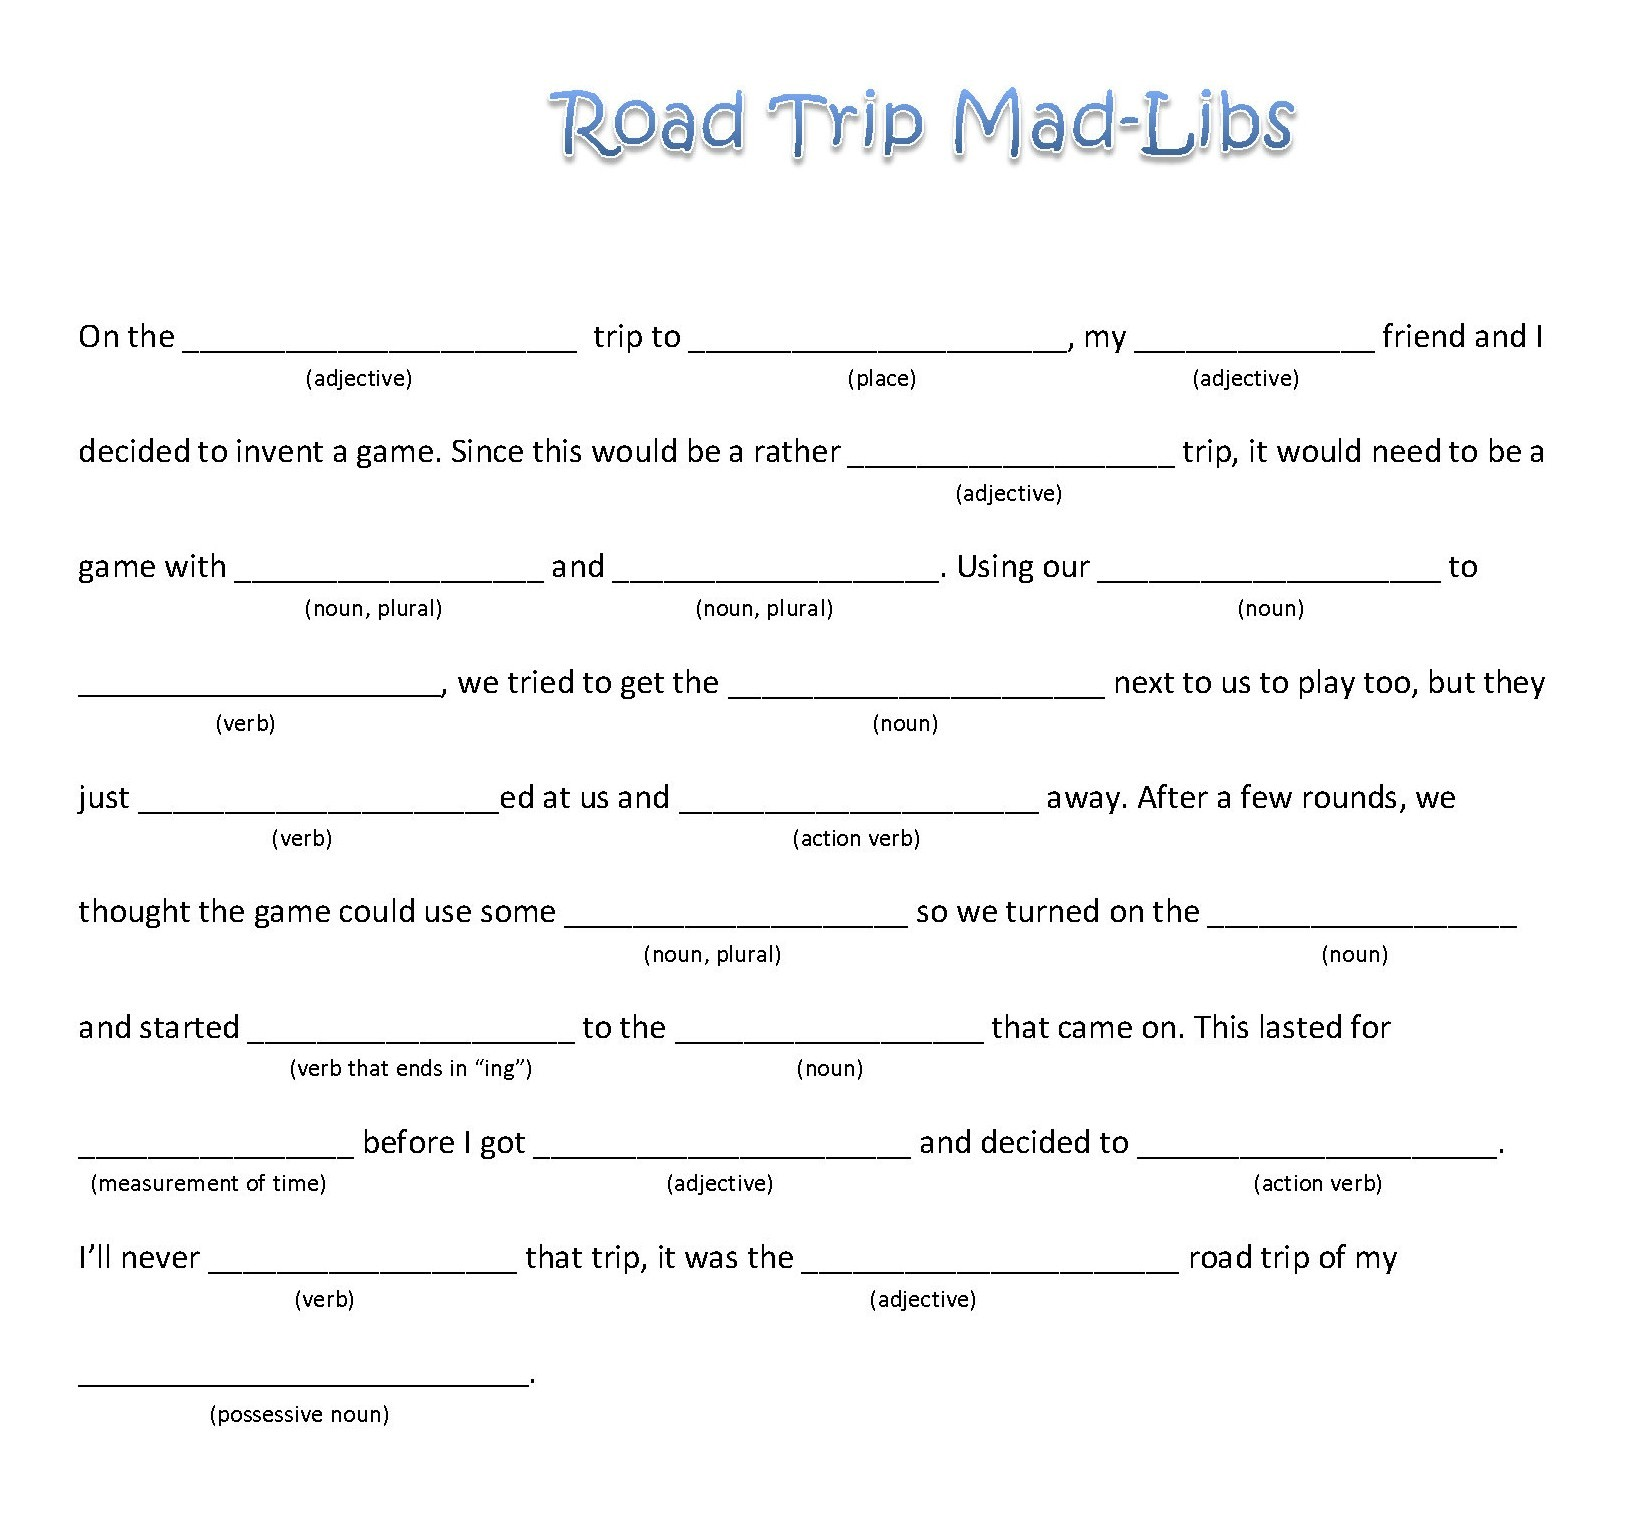 Day 247 Road Trip Mad Libs